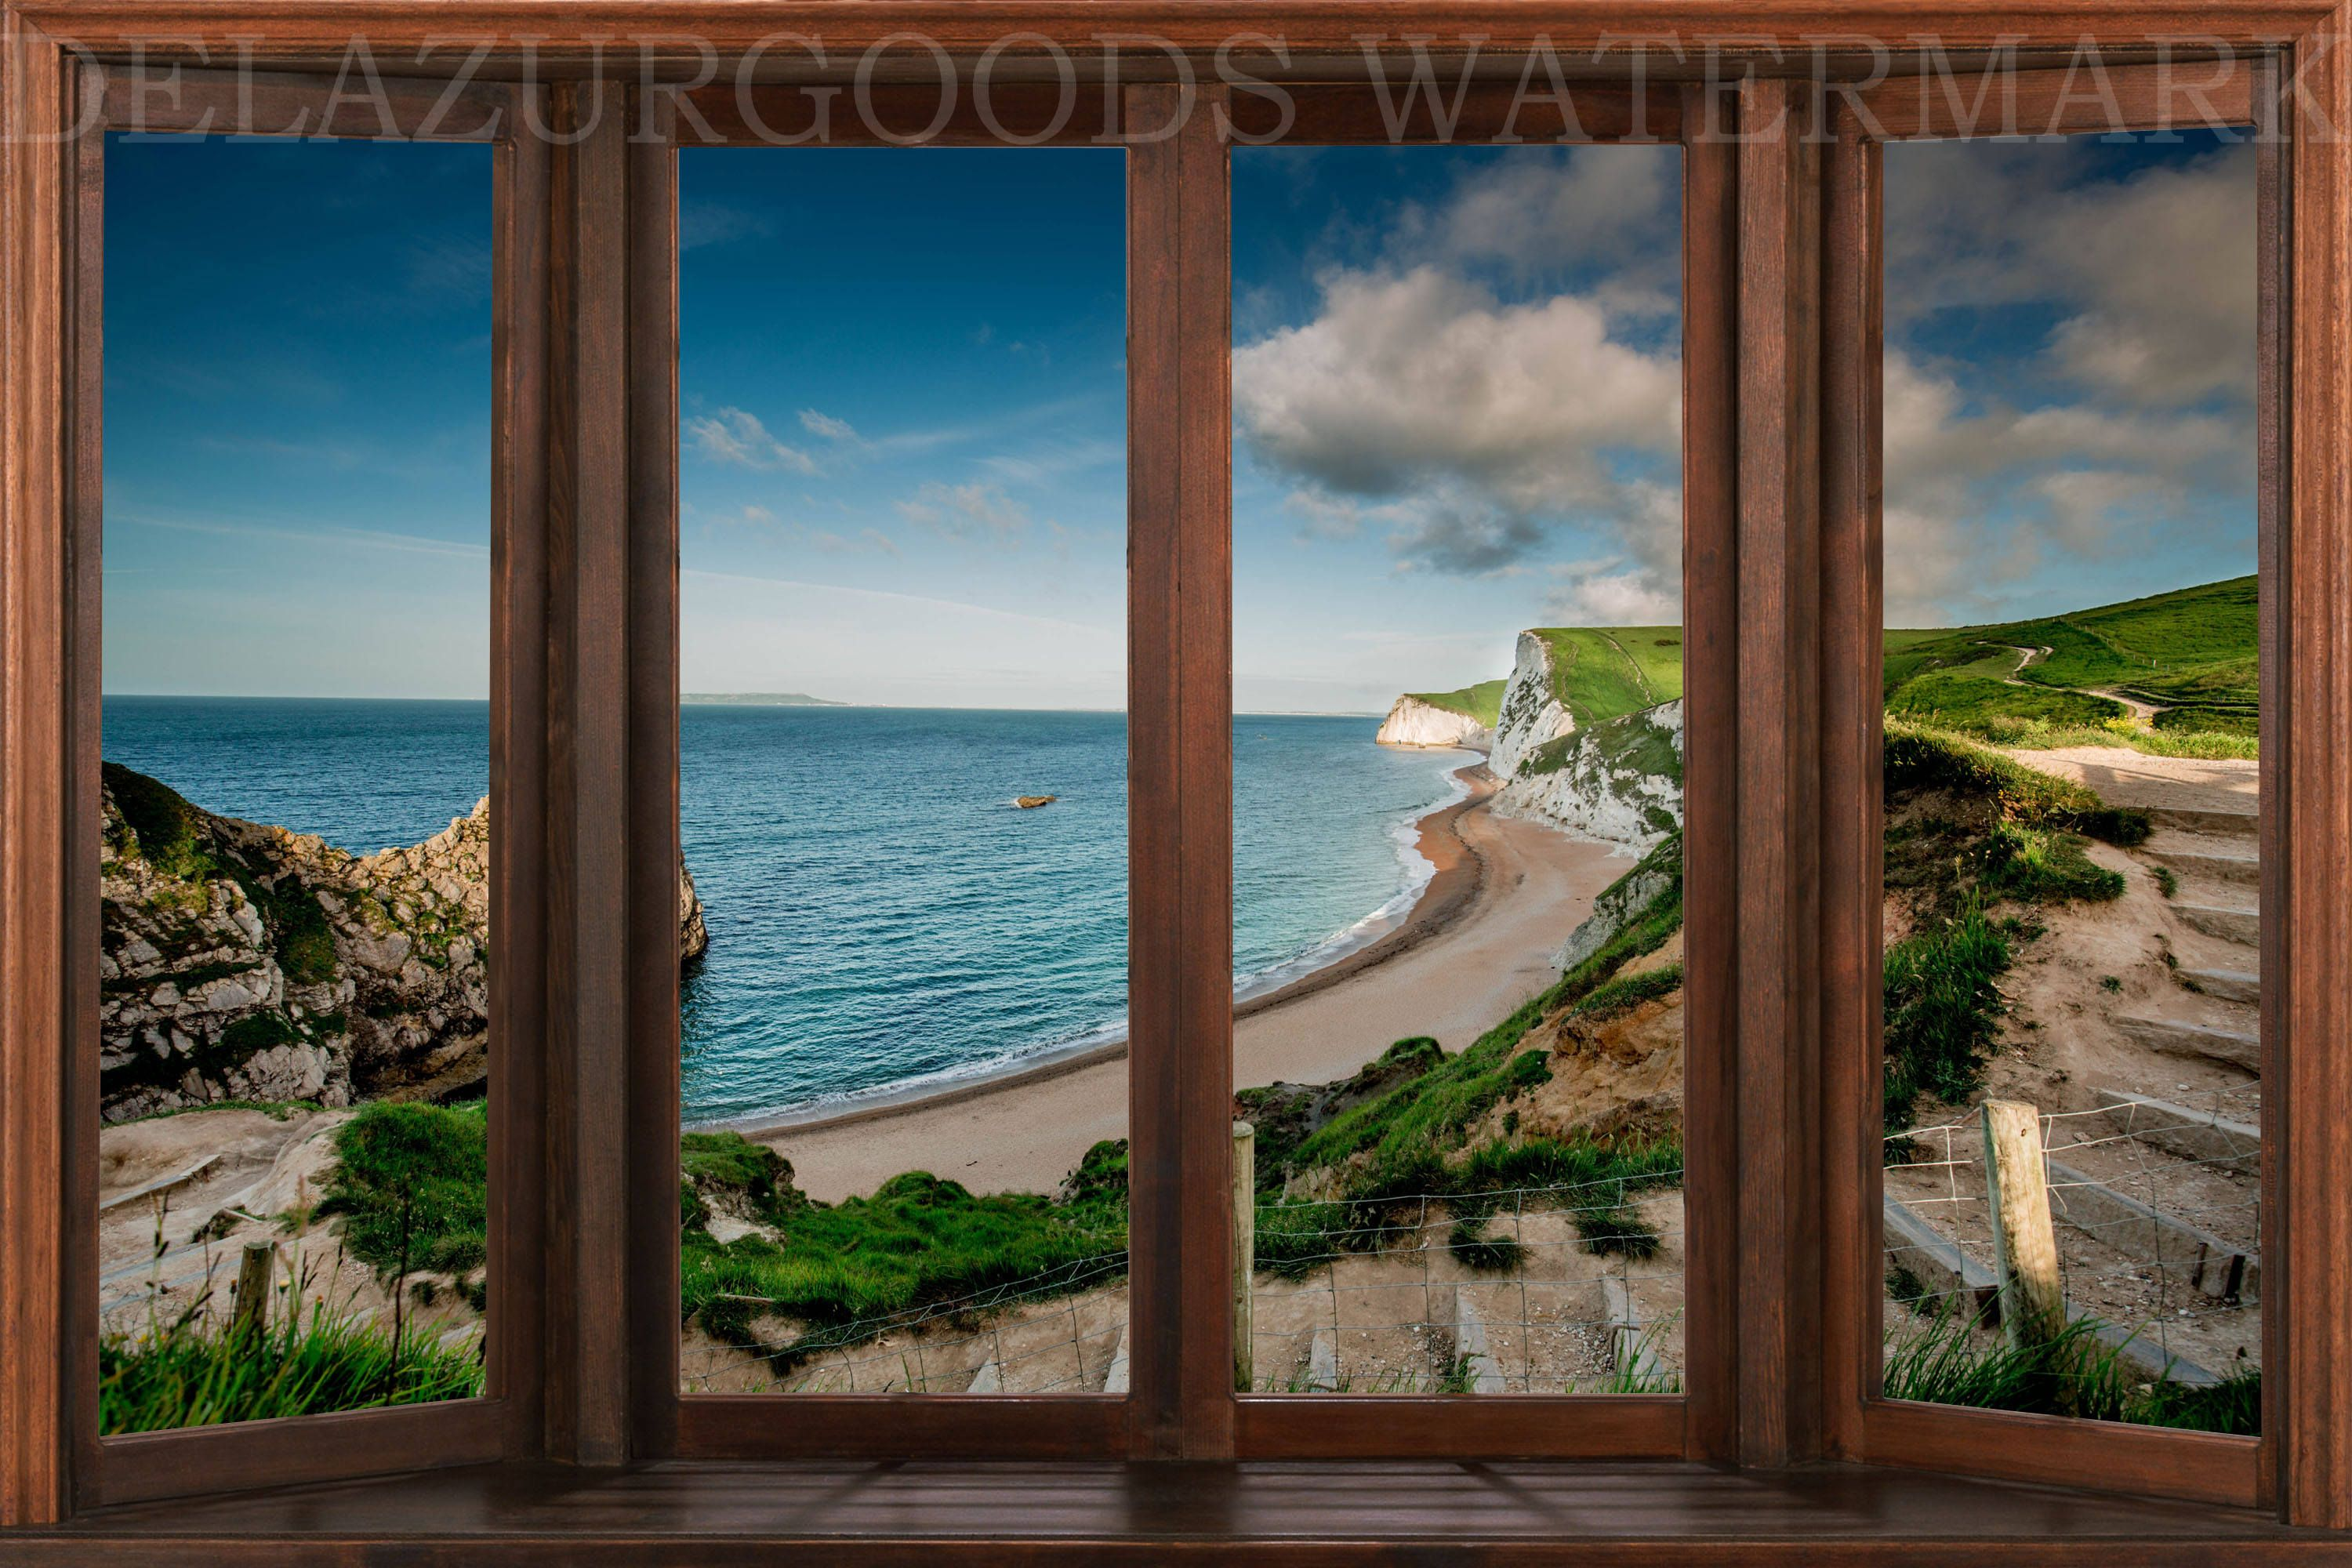 Beach House Window View Wall Decal Removable Wallpaper Peel Stick High Quality Materials Diy By Delazurgoods O Window View House Window View Wallpaper